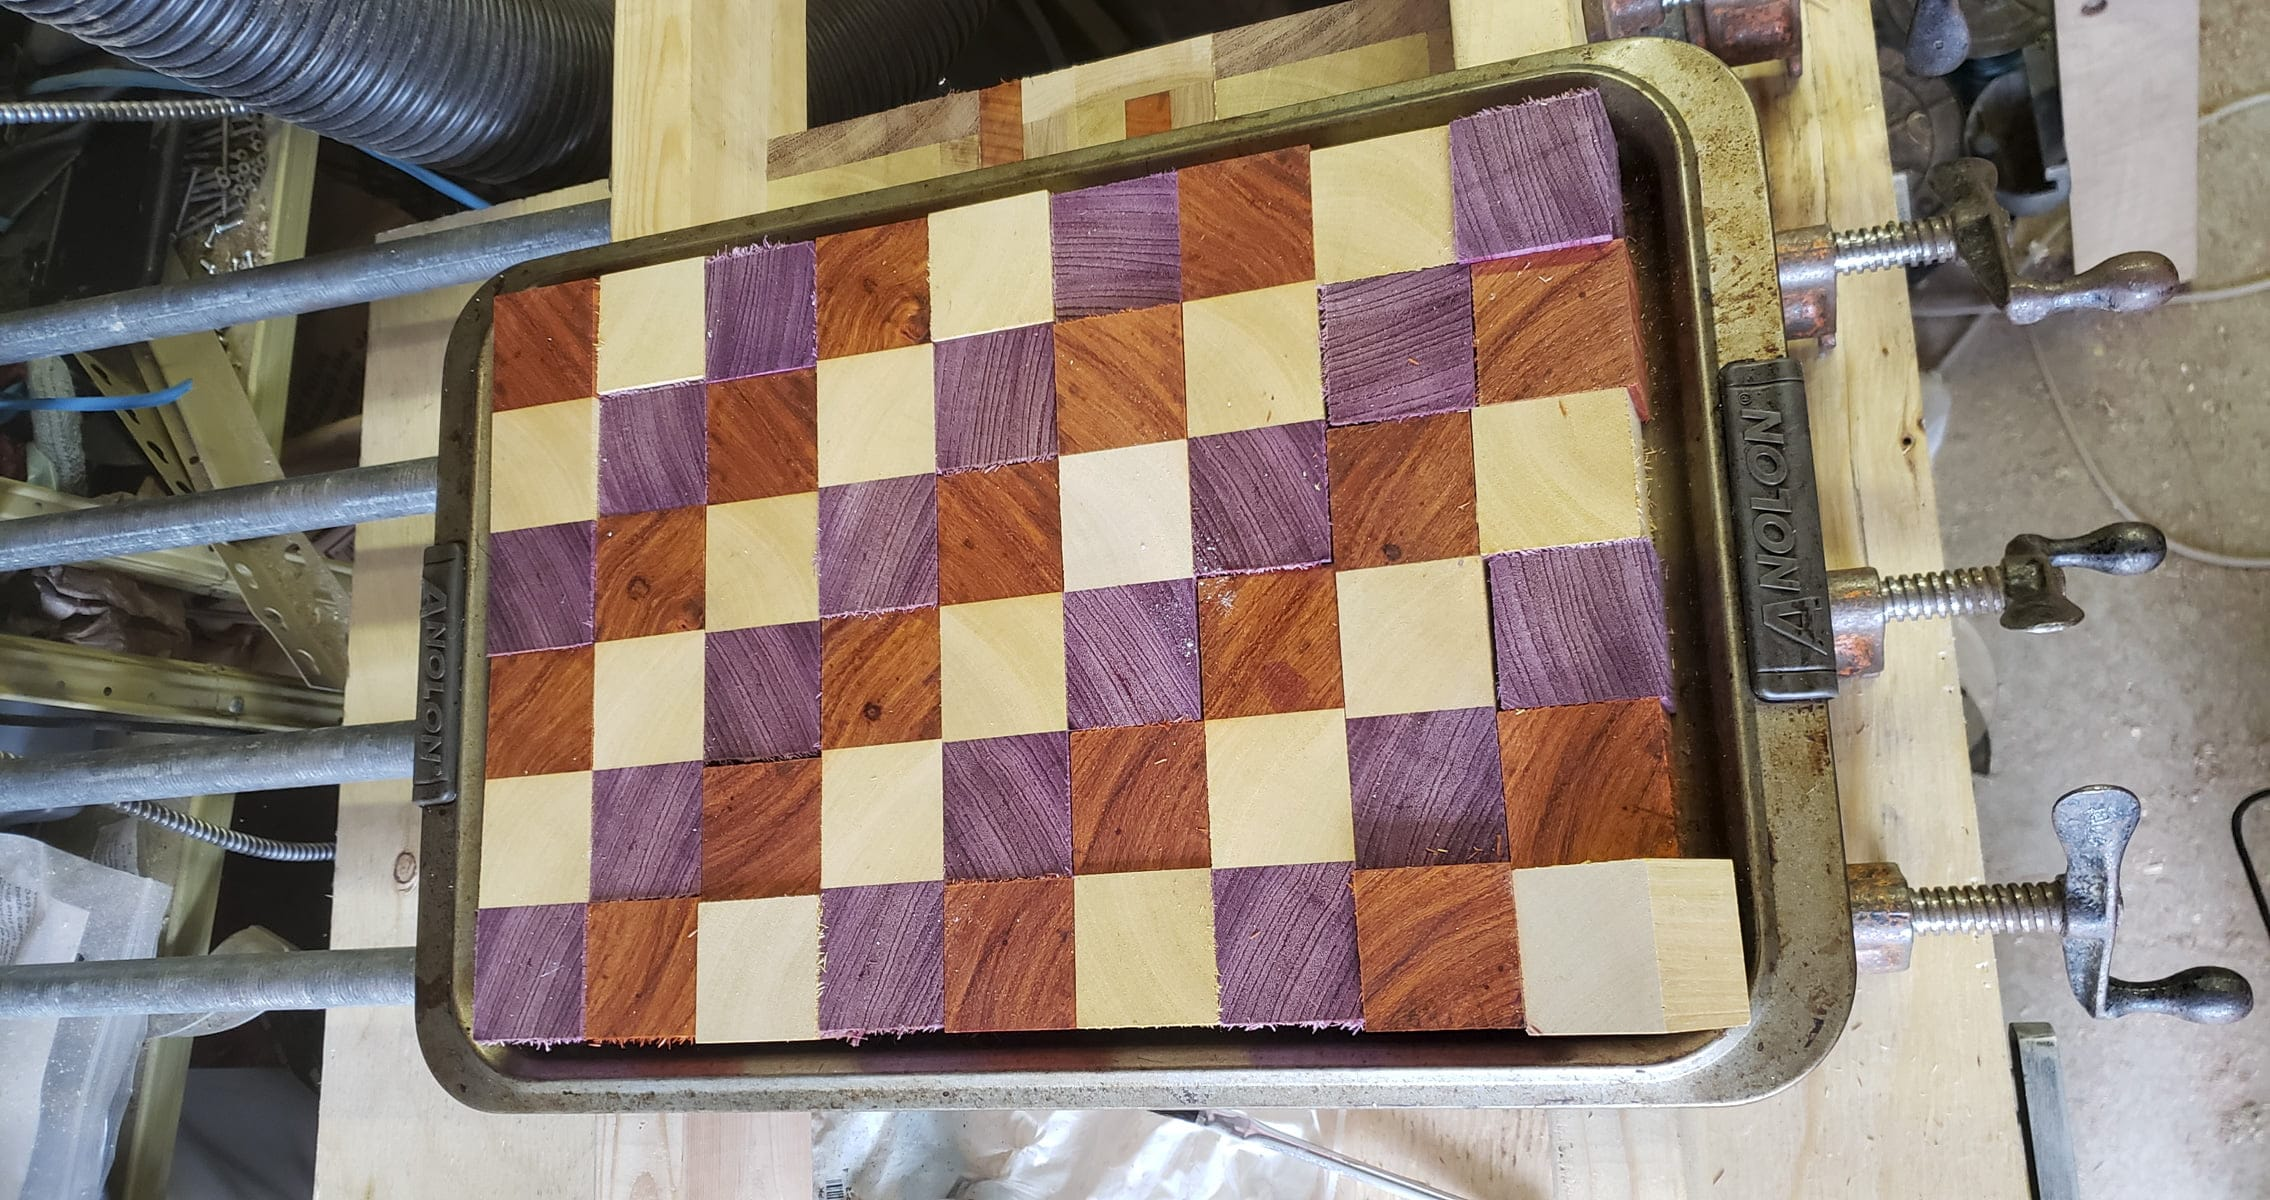 54 cubes are laid out in a grid on a cookie sheet